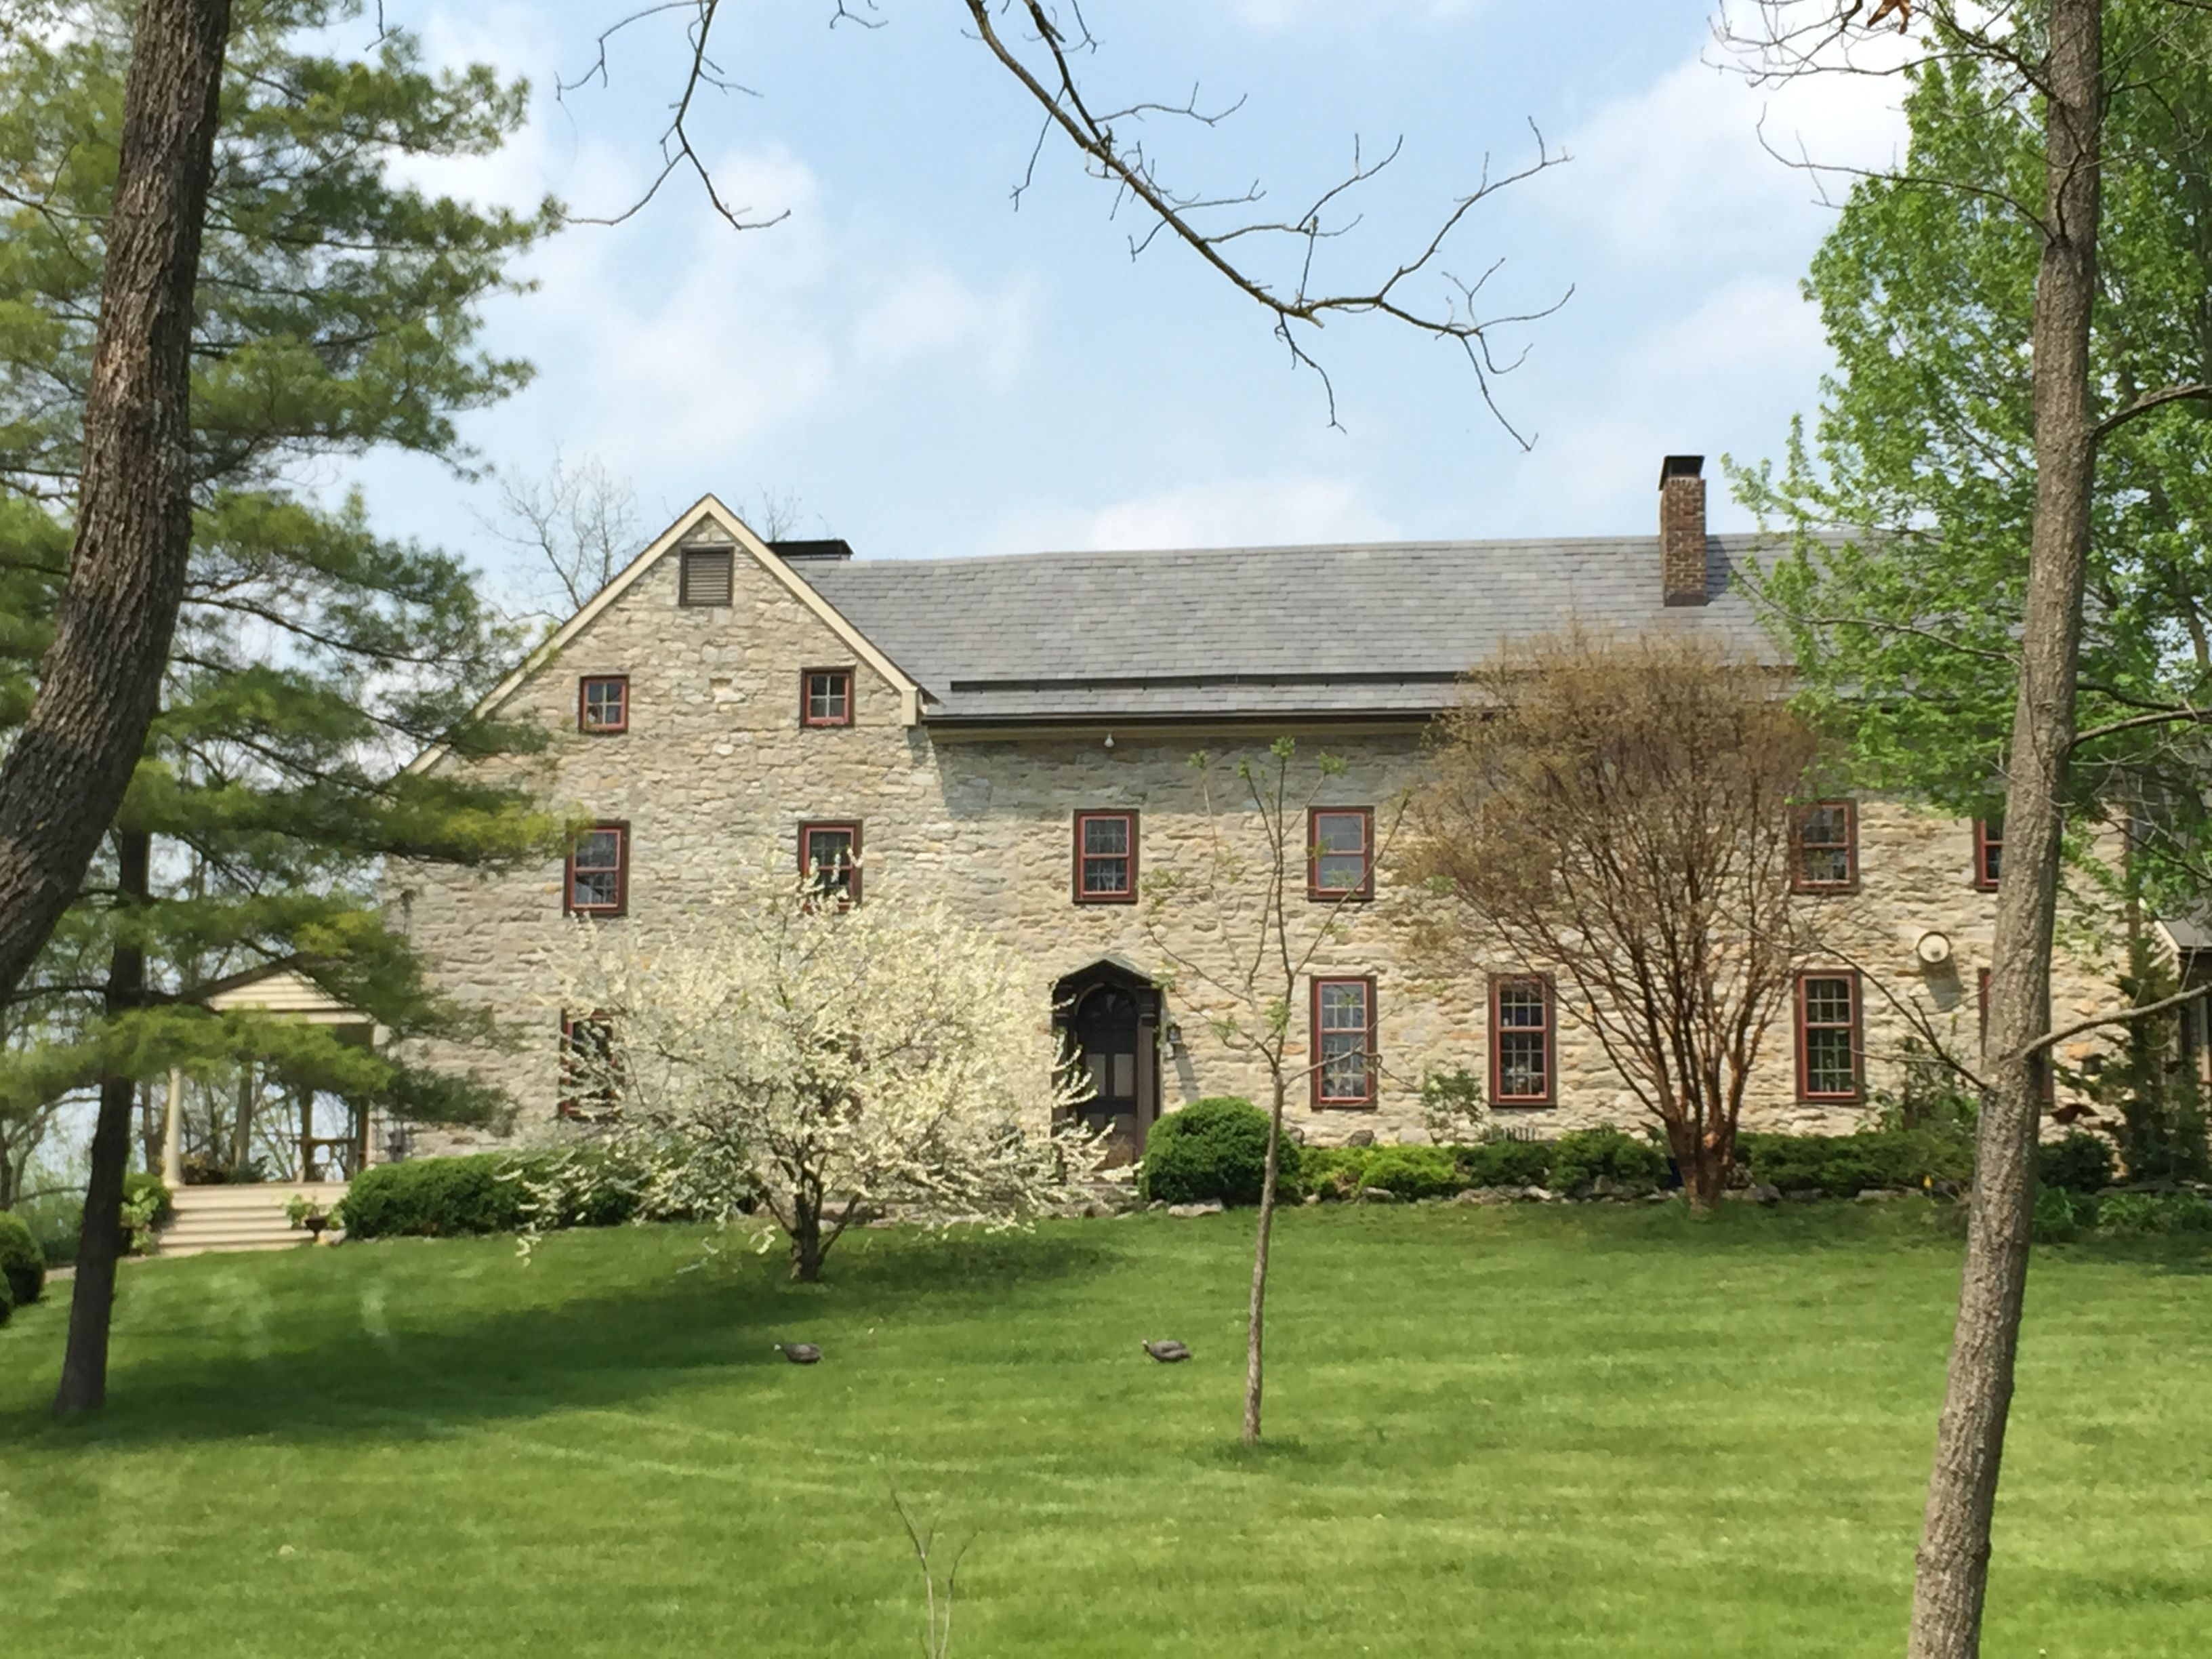 Old Forge Farm 1762 Near Hagerstown Maryland This Is The Oldest